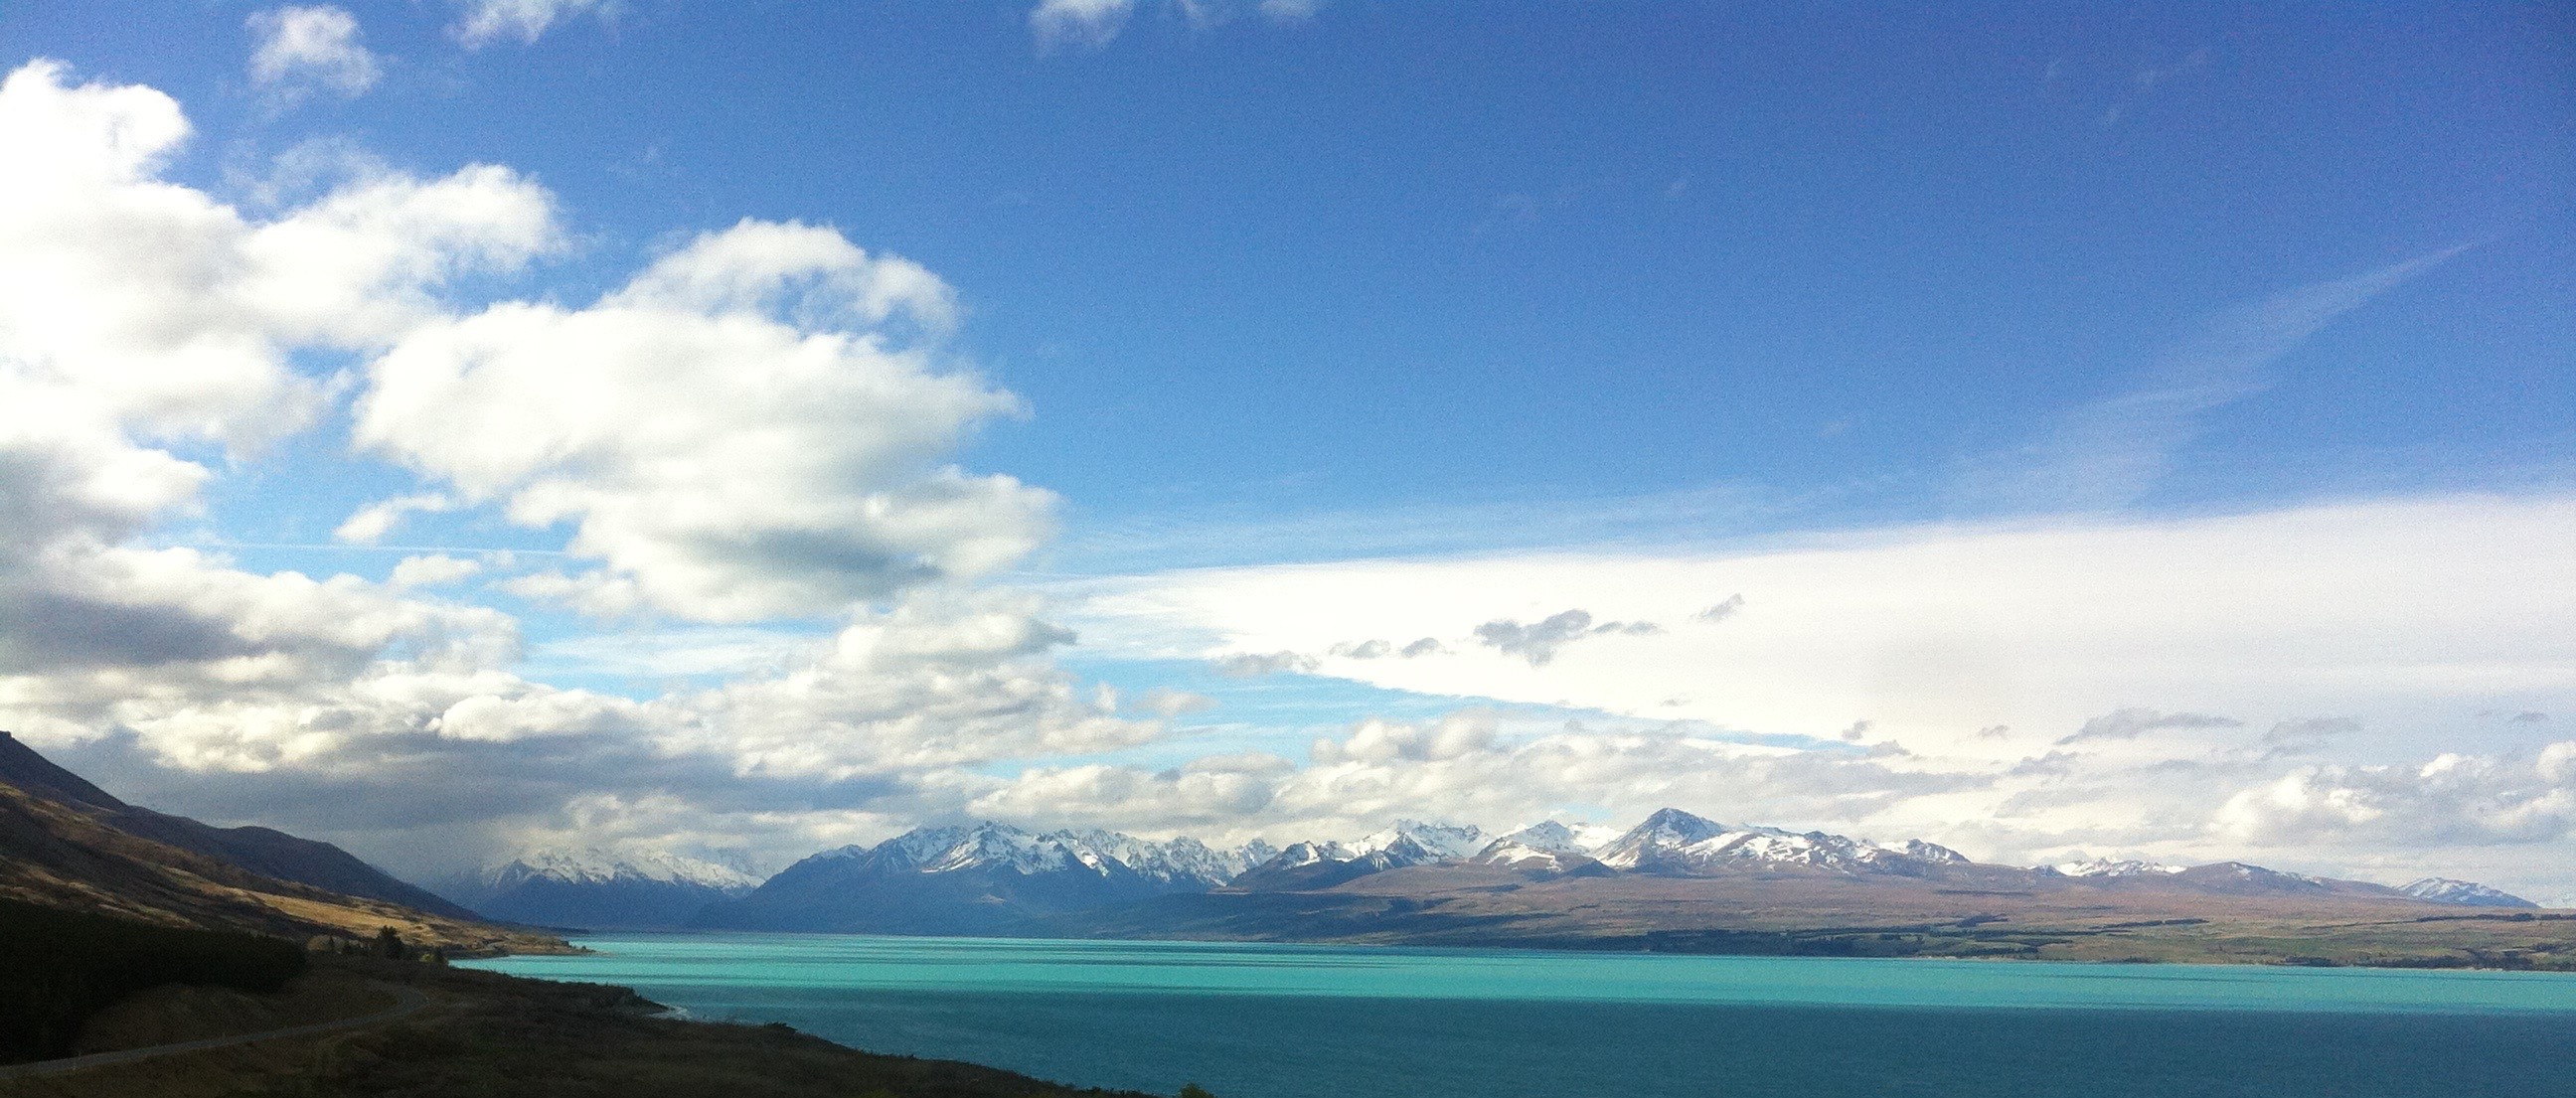 Top 5 Places to Visit on the South Island of New Zealand